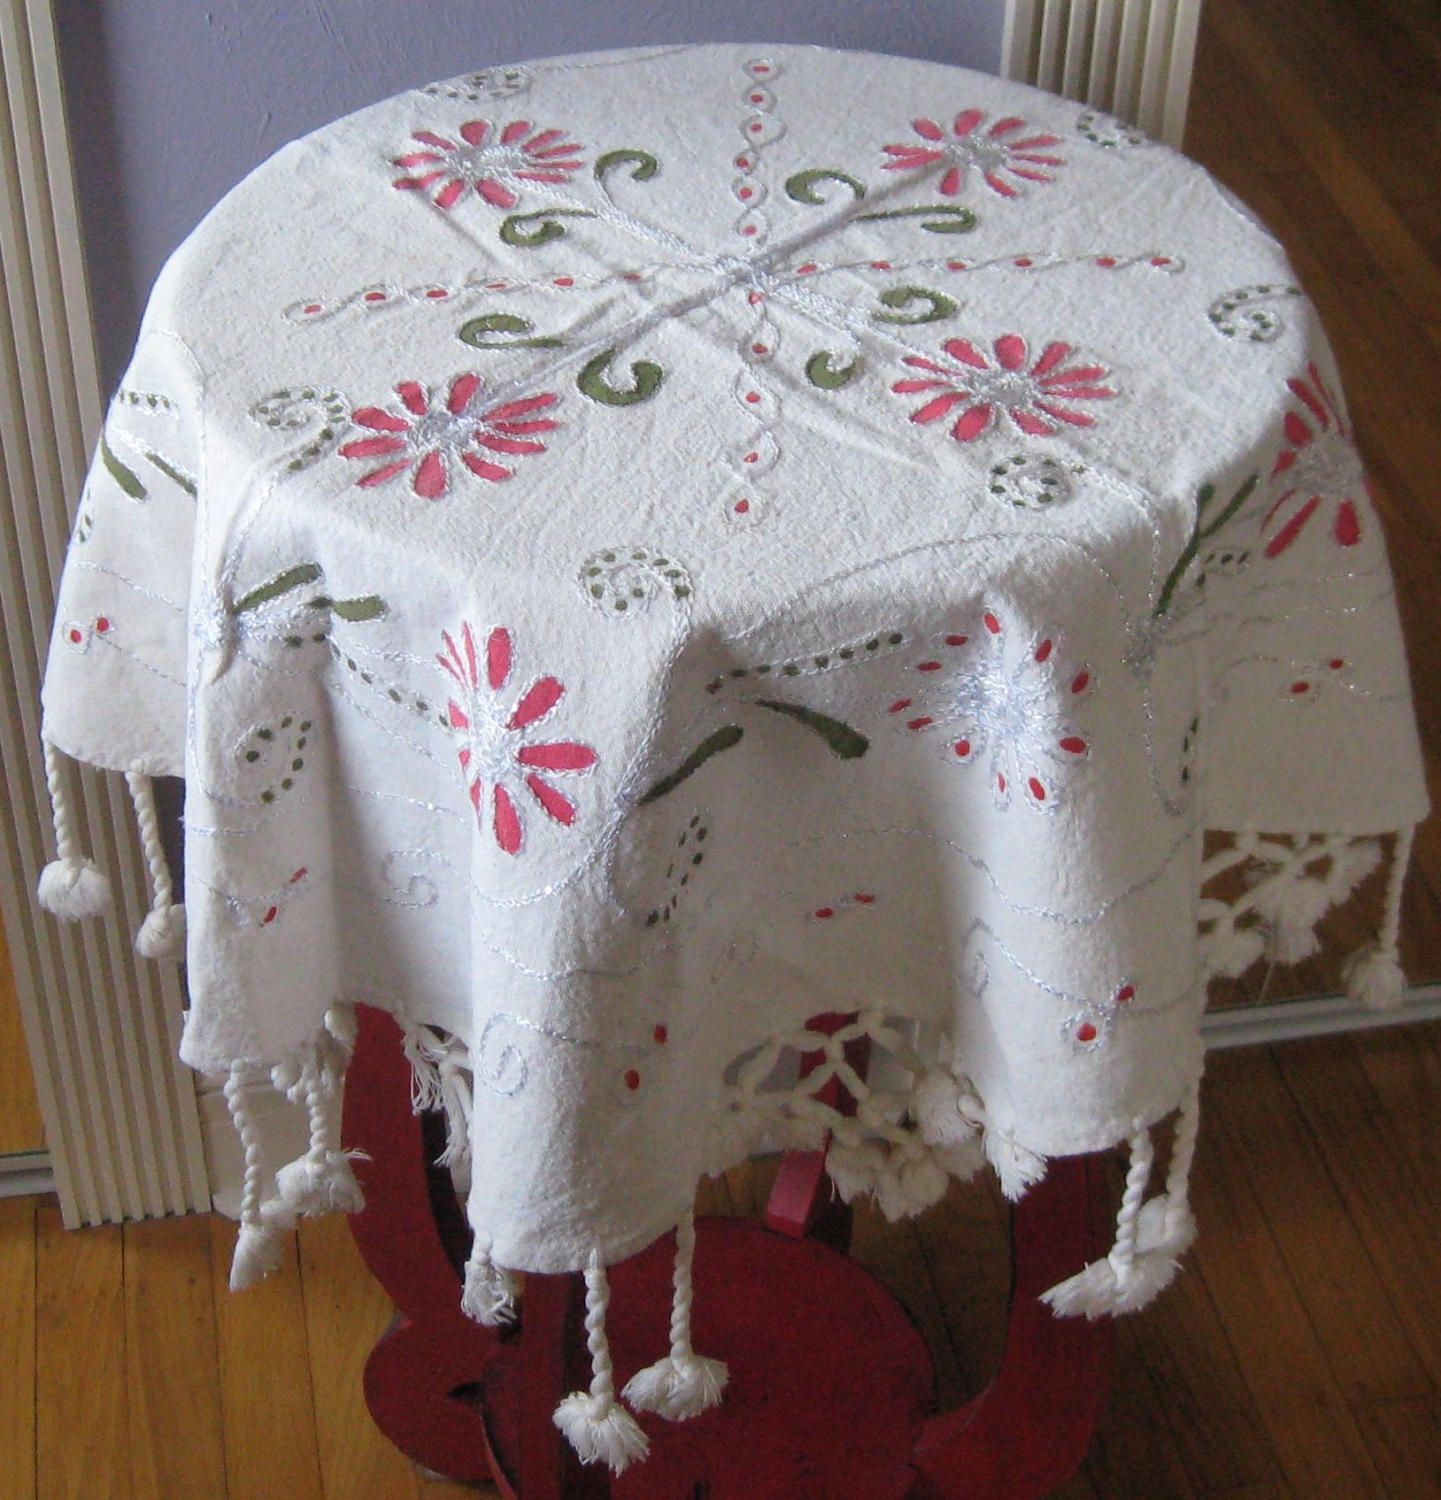 kmart tables vinyl square common lace inch for topper round plastic cotton tablecloth white small alluring patio linens inches table accent ture sizes target measure with full